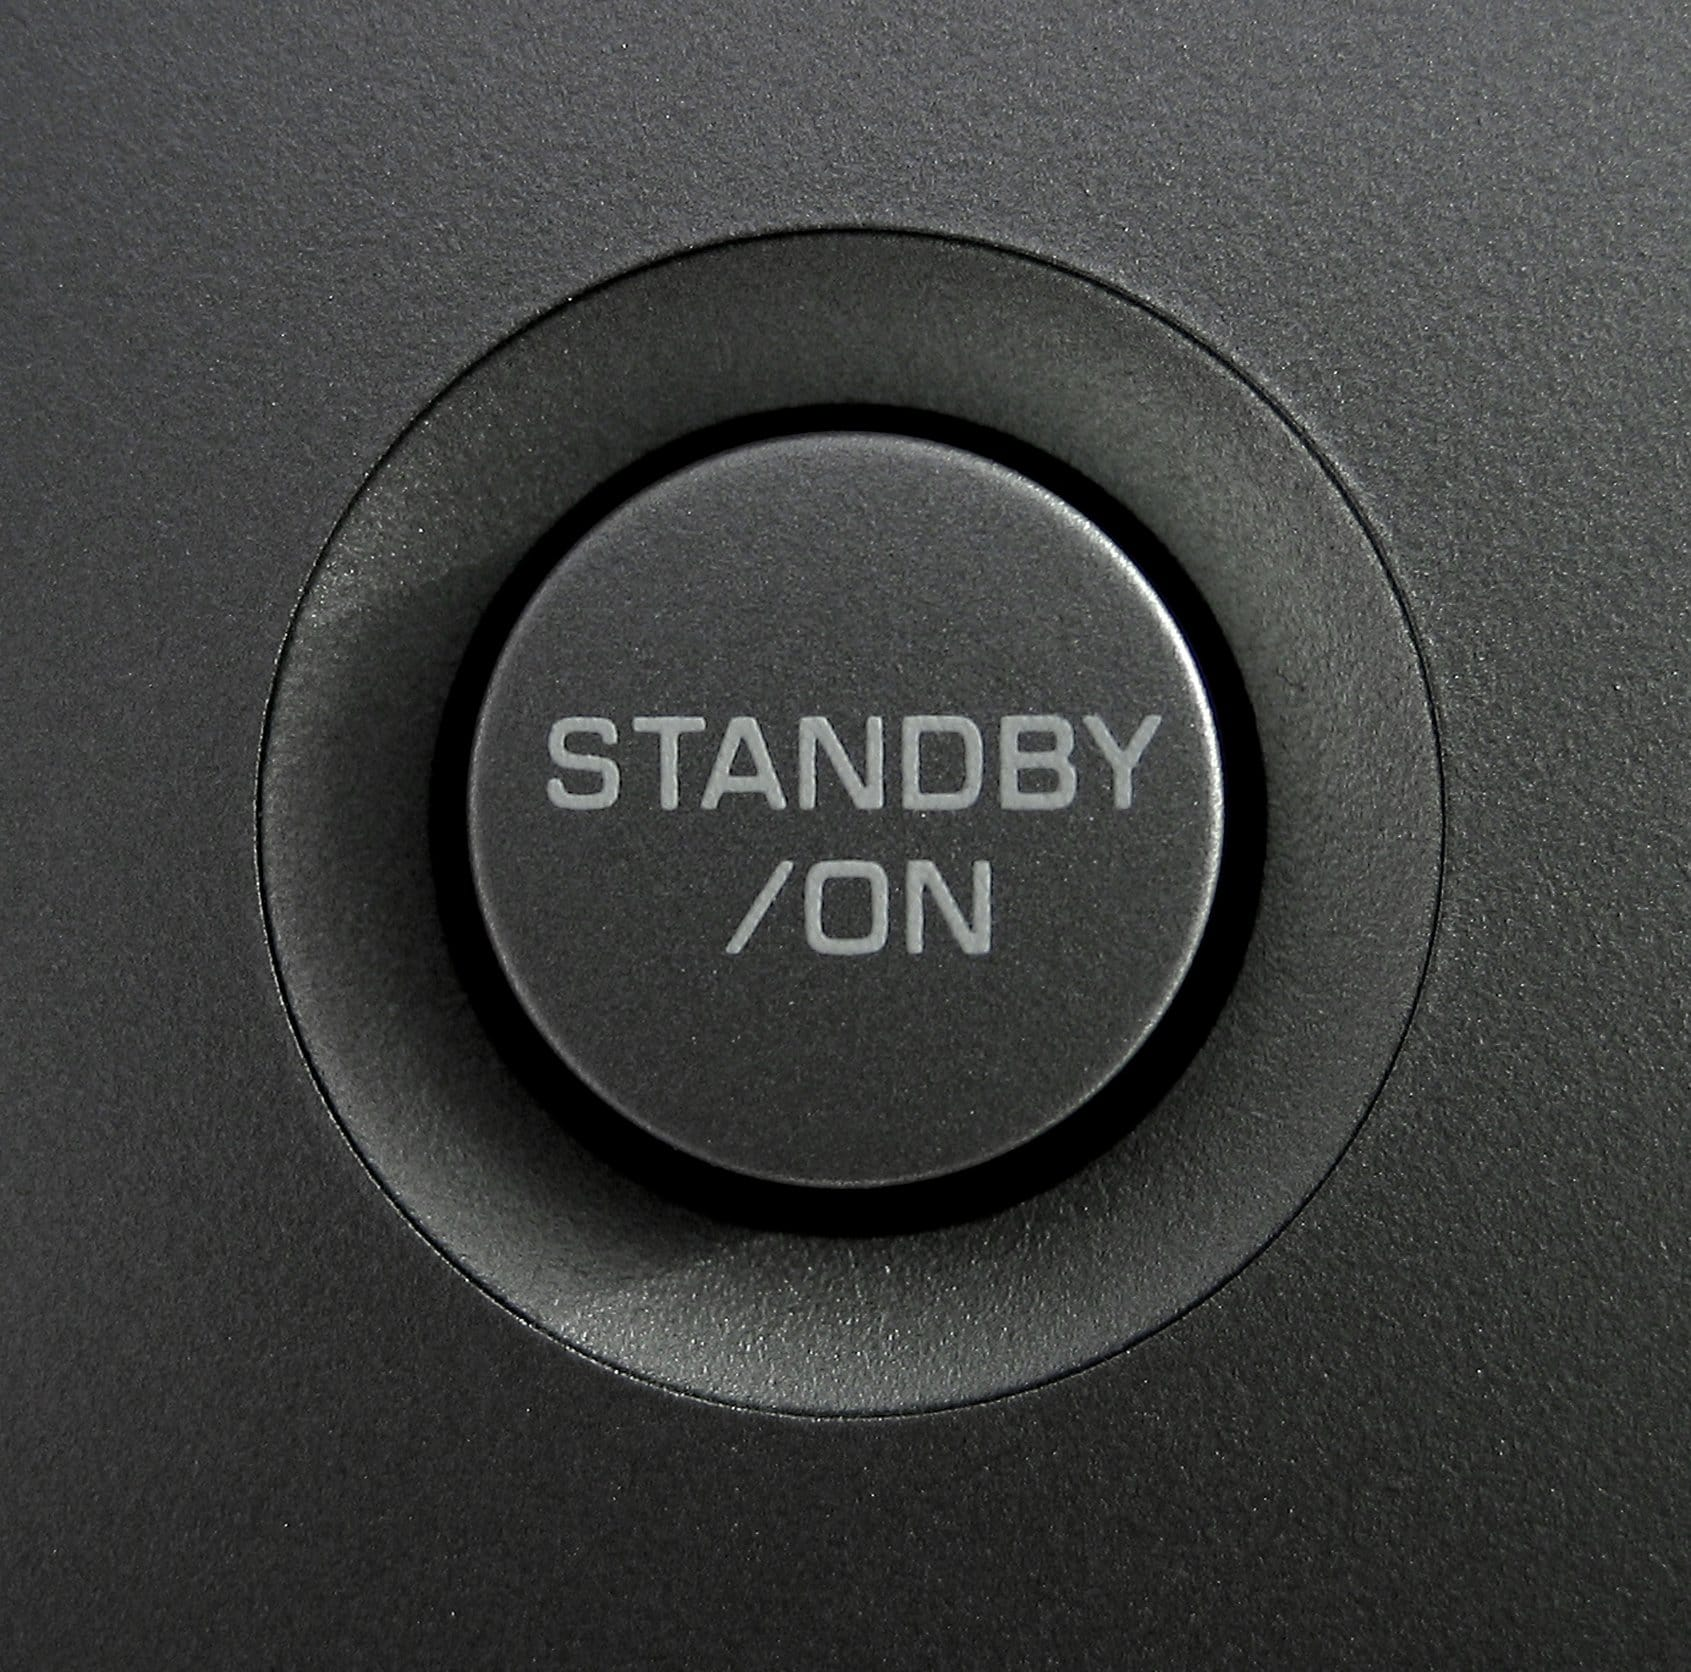 How to Create a Standby for Postgresql Windows